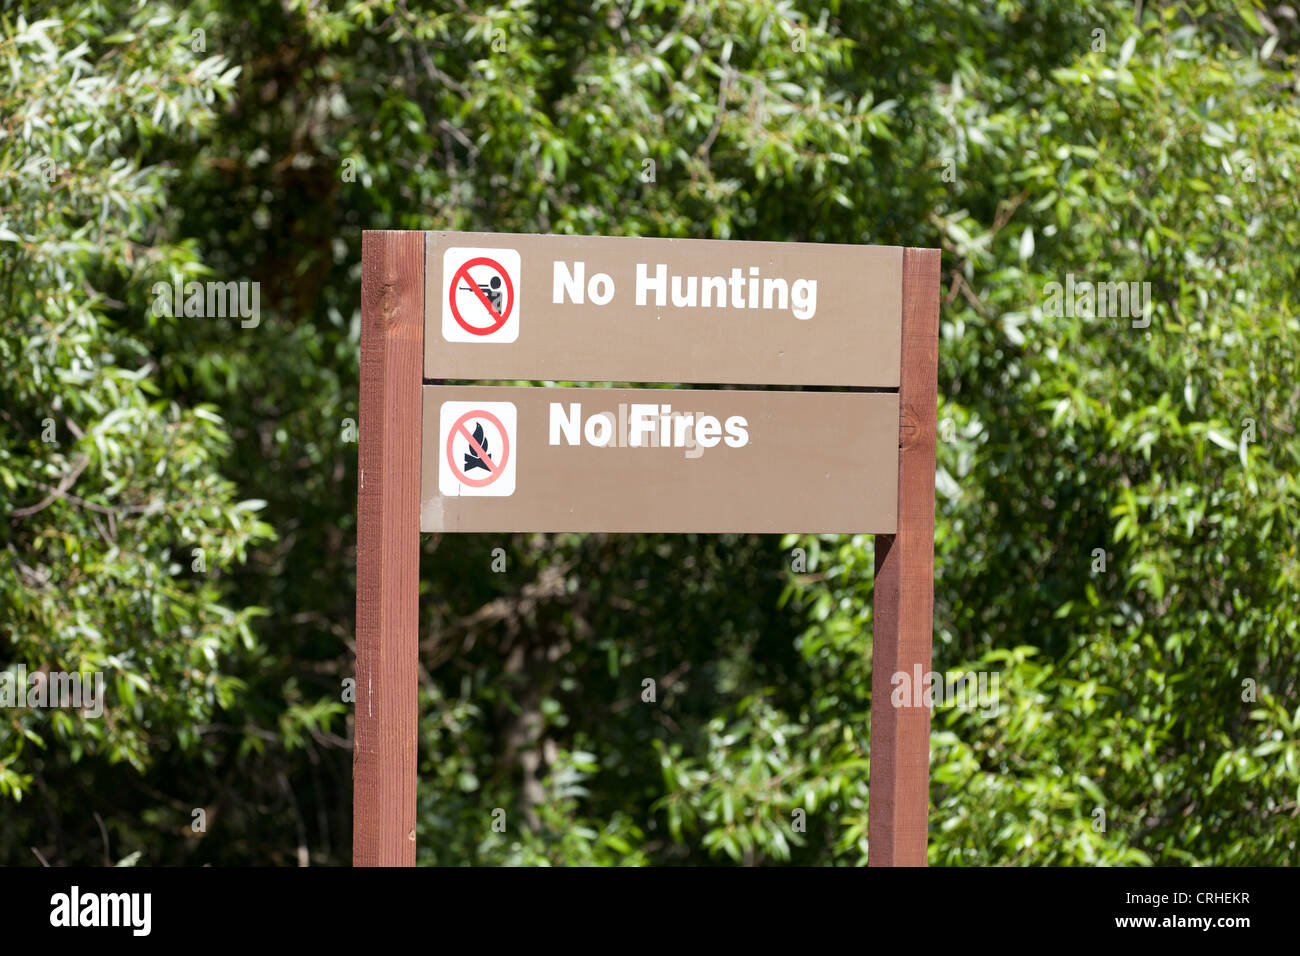 No Hunting No Fires sign - Stock Image